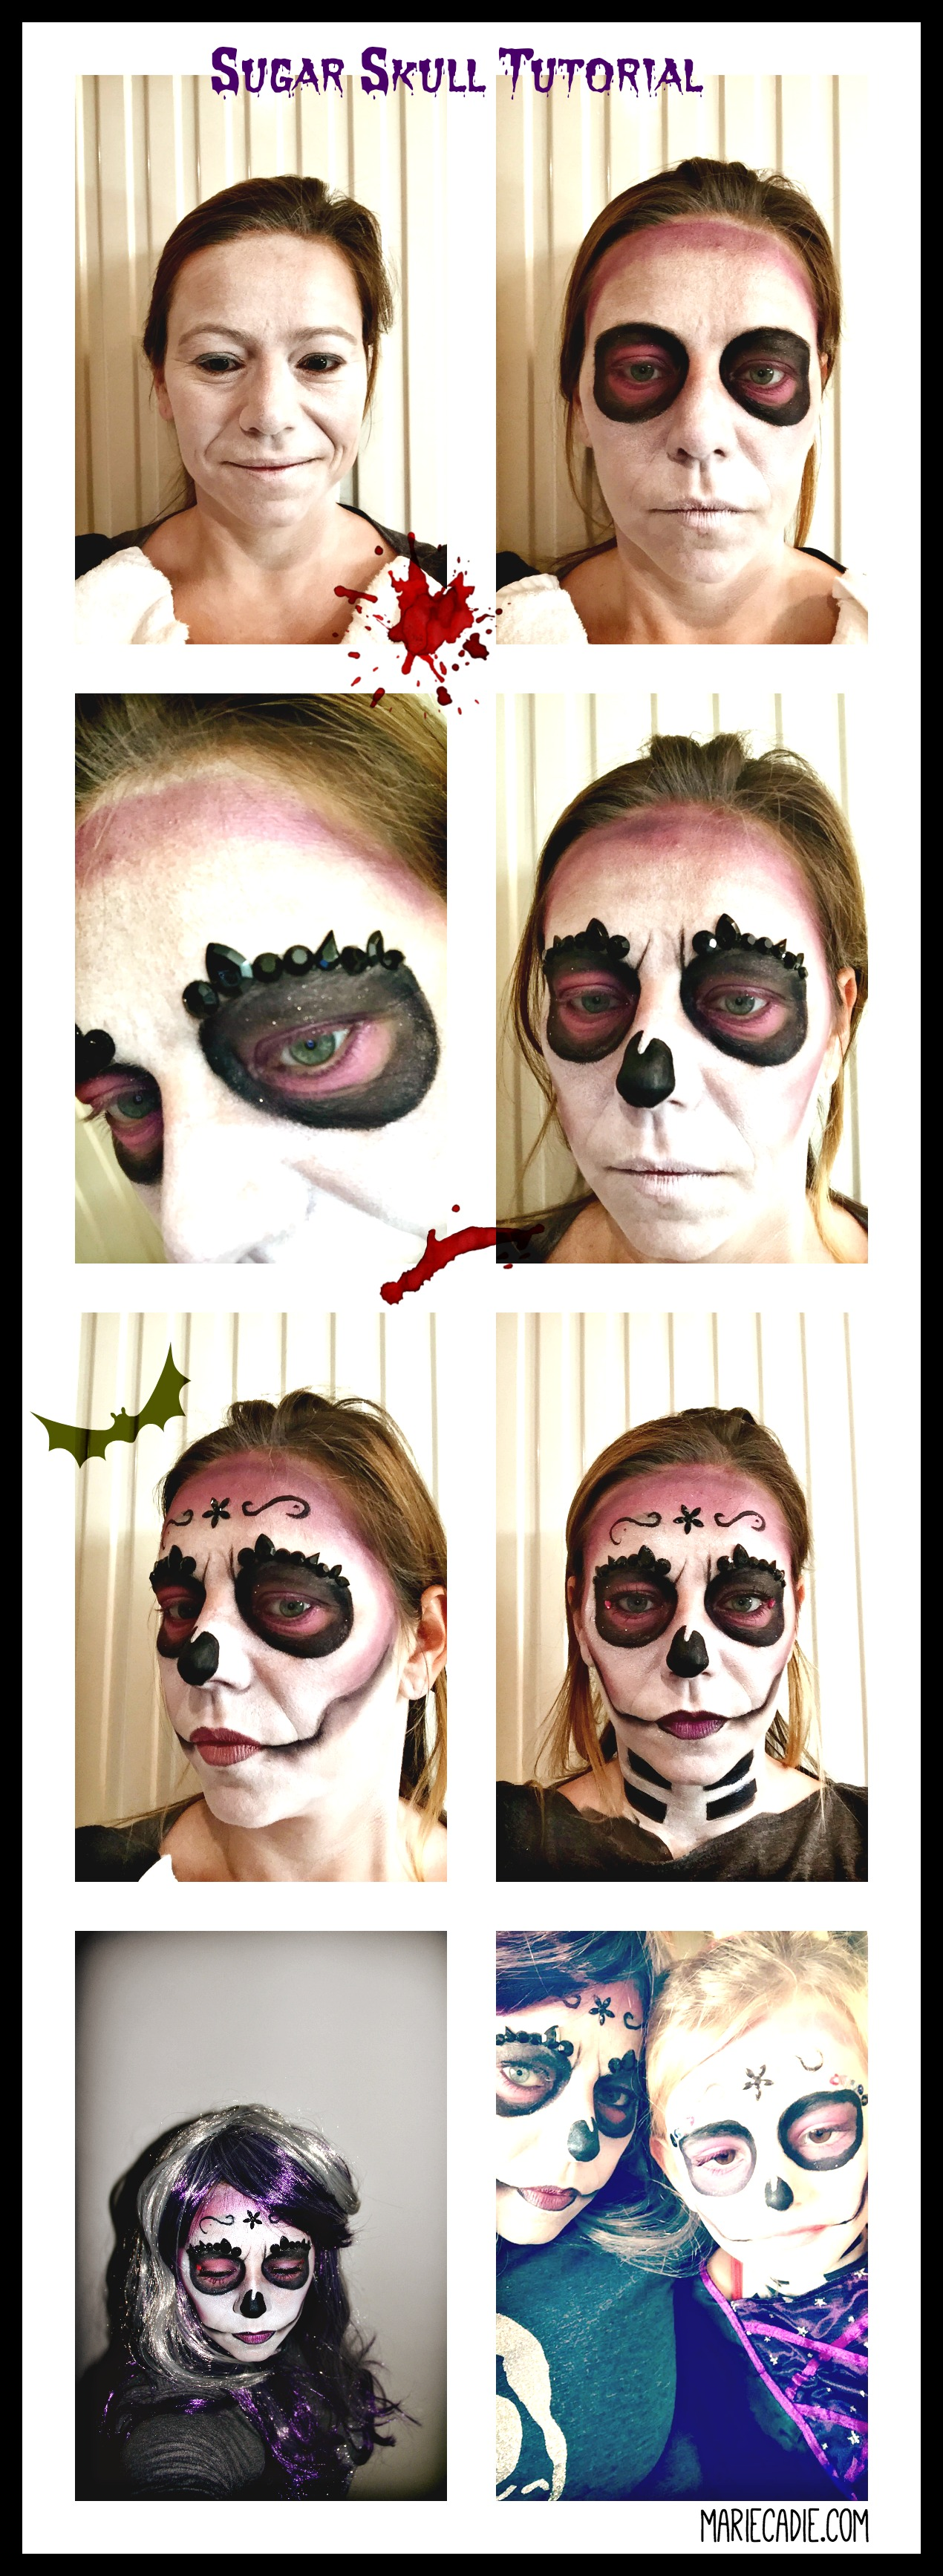 mariecadie-com-sugar-skull-make-up-tutorial